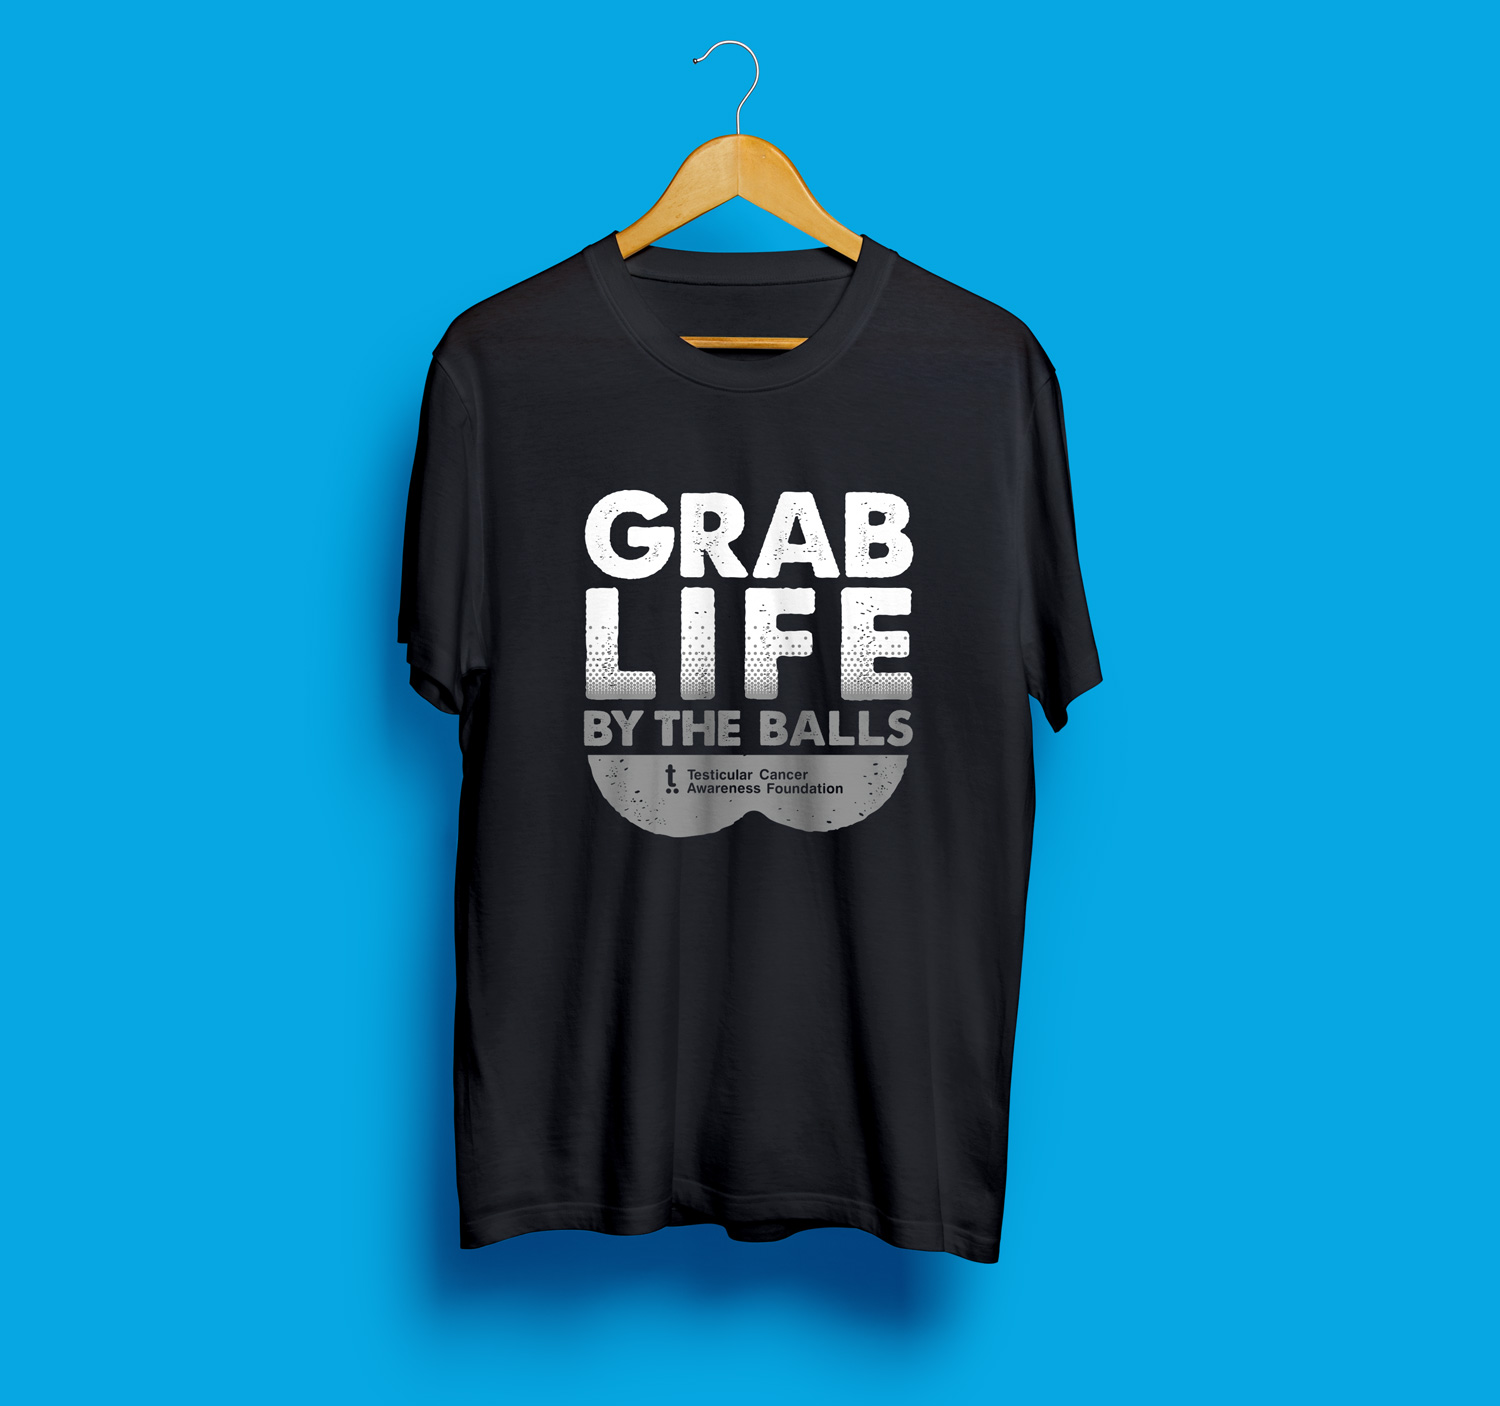 fcaa49fe NEW Grab Life By The Balls Grey Fade Tee - L, XL Only — Testicular Cancer  Awareness Foundation